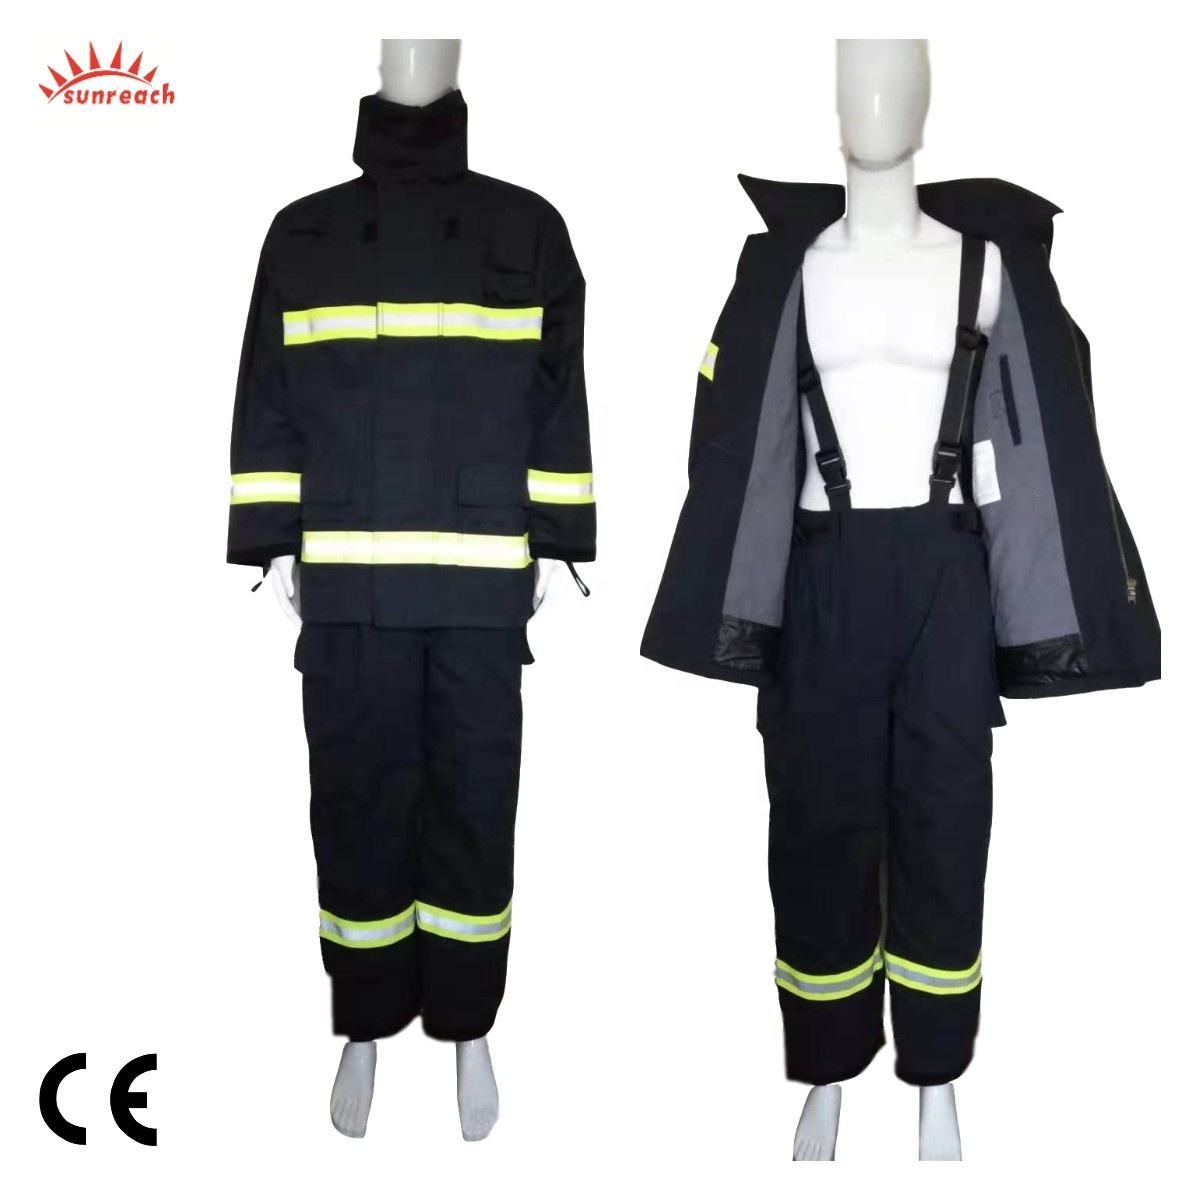 CE Certified Fireman EN469 Rescue Flame Retardant Nomex Fire Fighting Suit for Fire Fighters